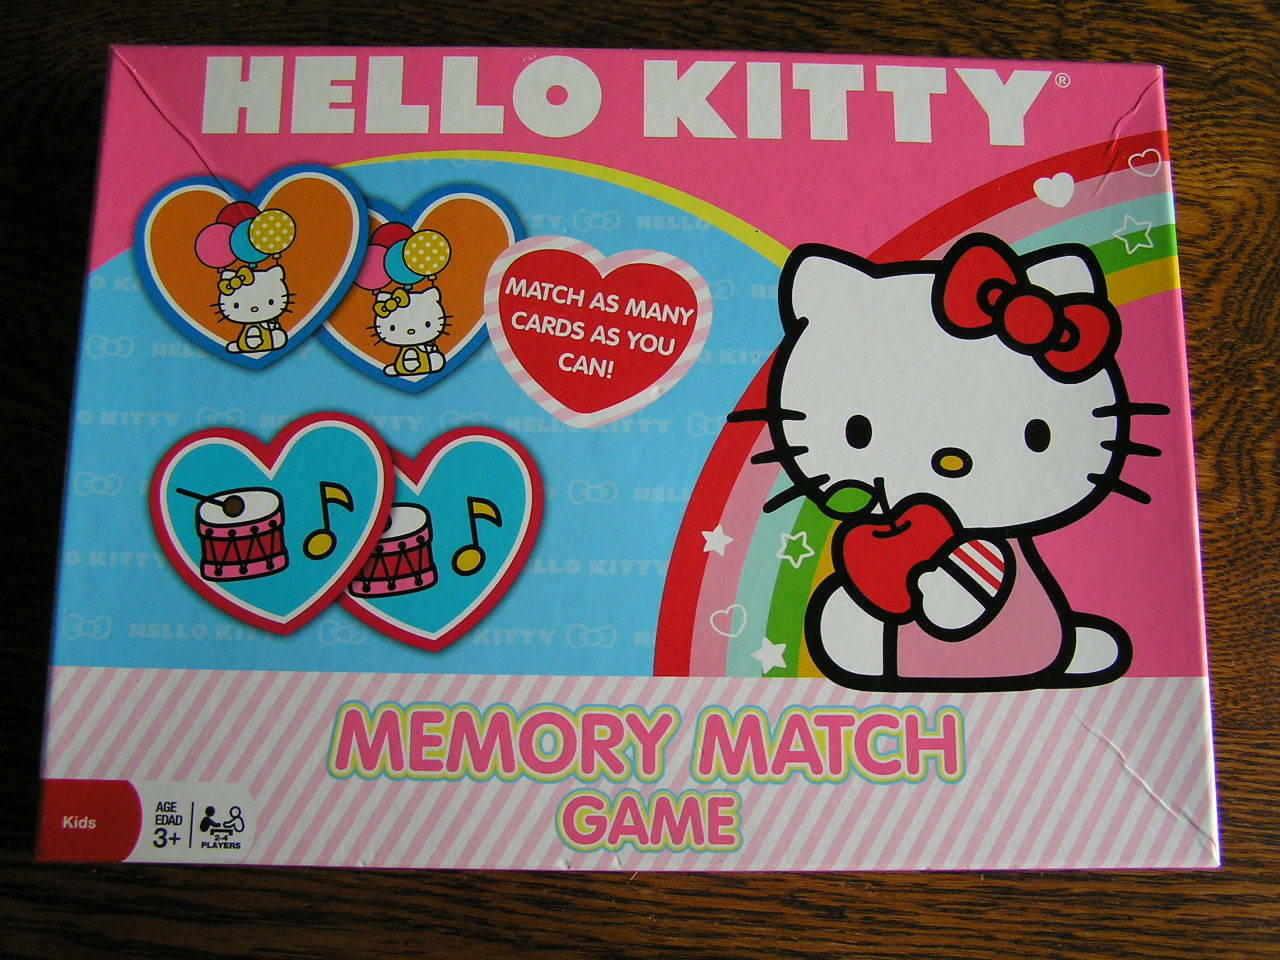 Uncategorized Hello Kitty Matching Game hello kitty memory match game 90027 cardinal industries inc ebay picture 1 of 3